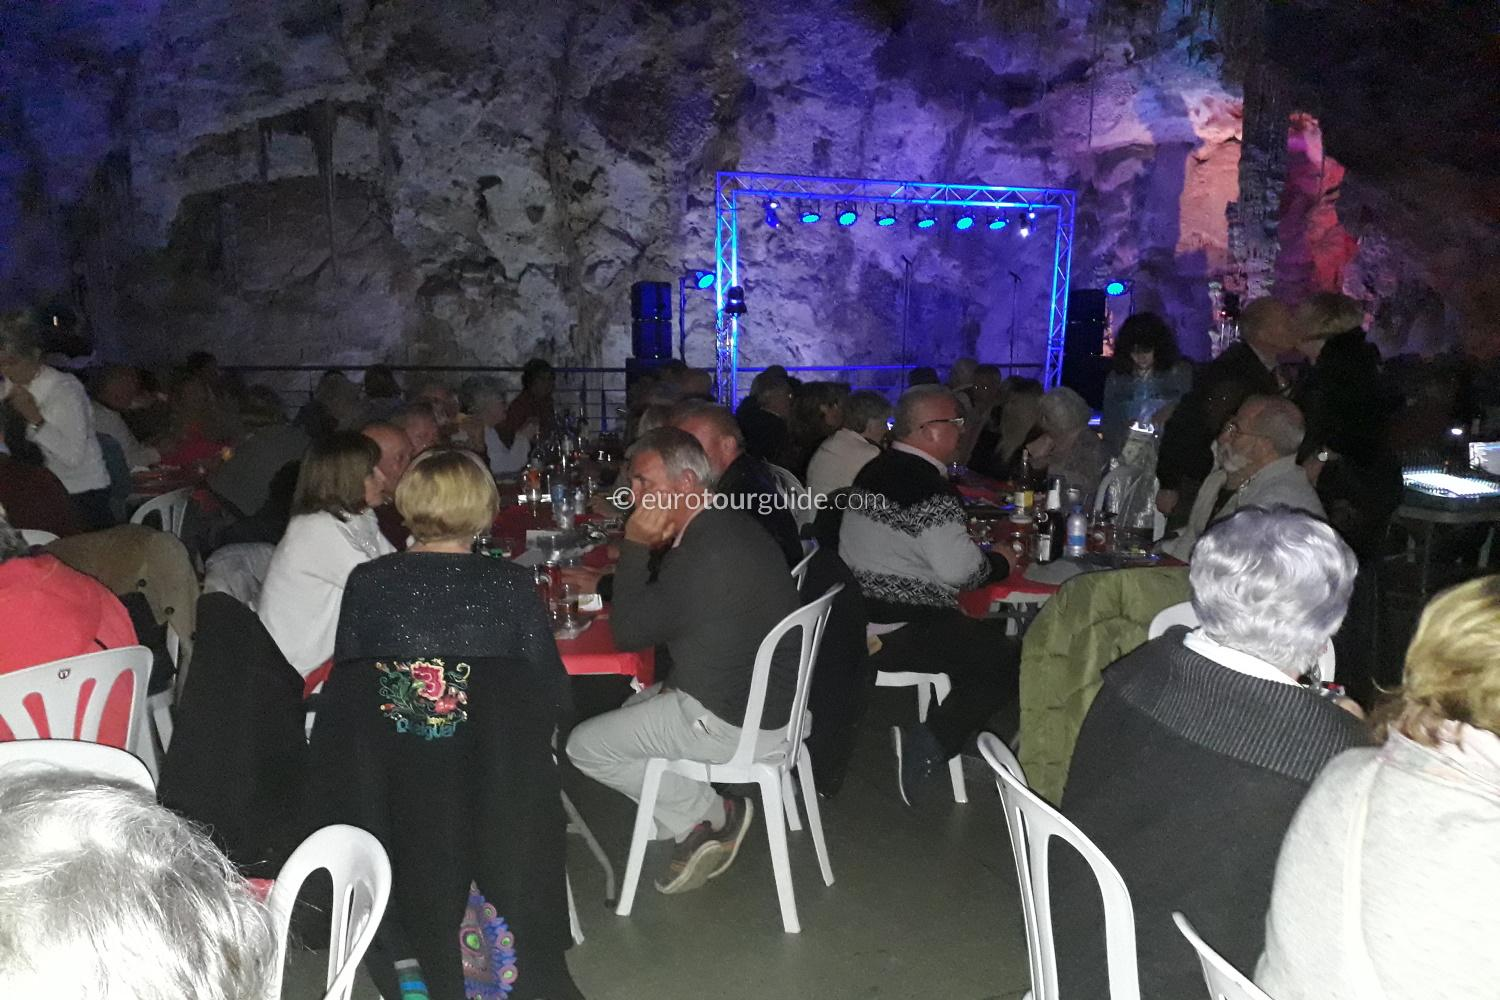 EuroTourGuide Coach Tour 15th February Busot Bocelli & Dion Tribute Cave Concert